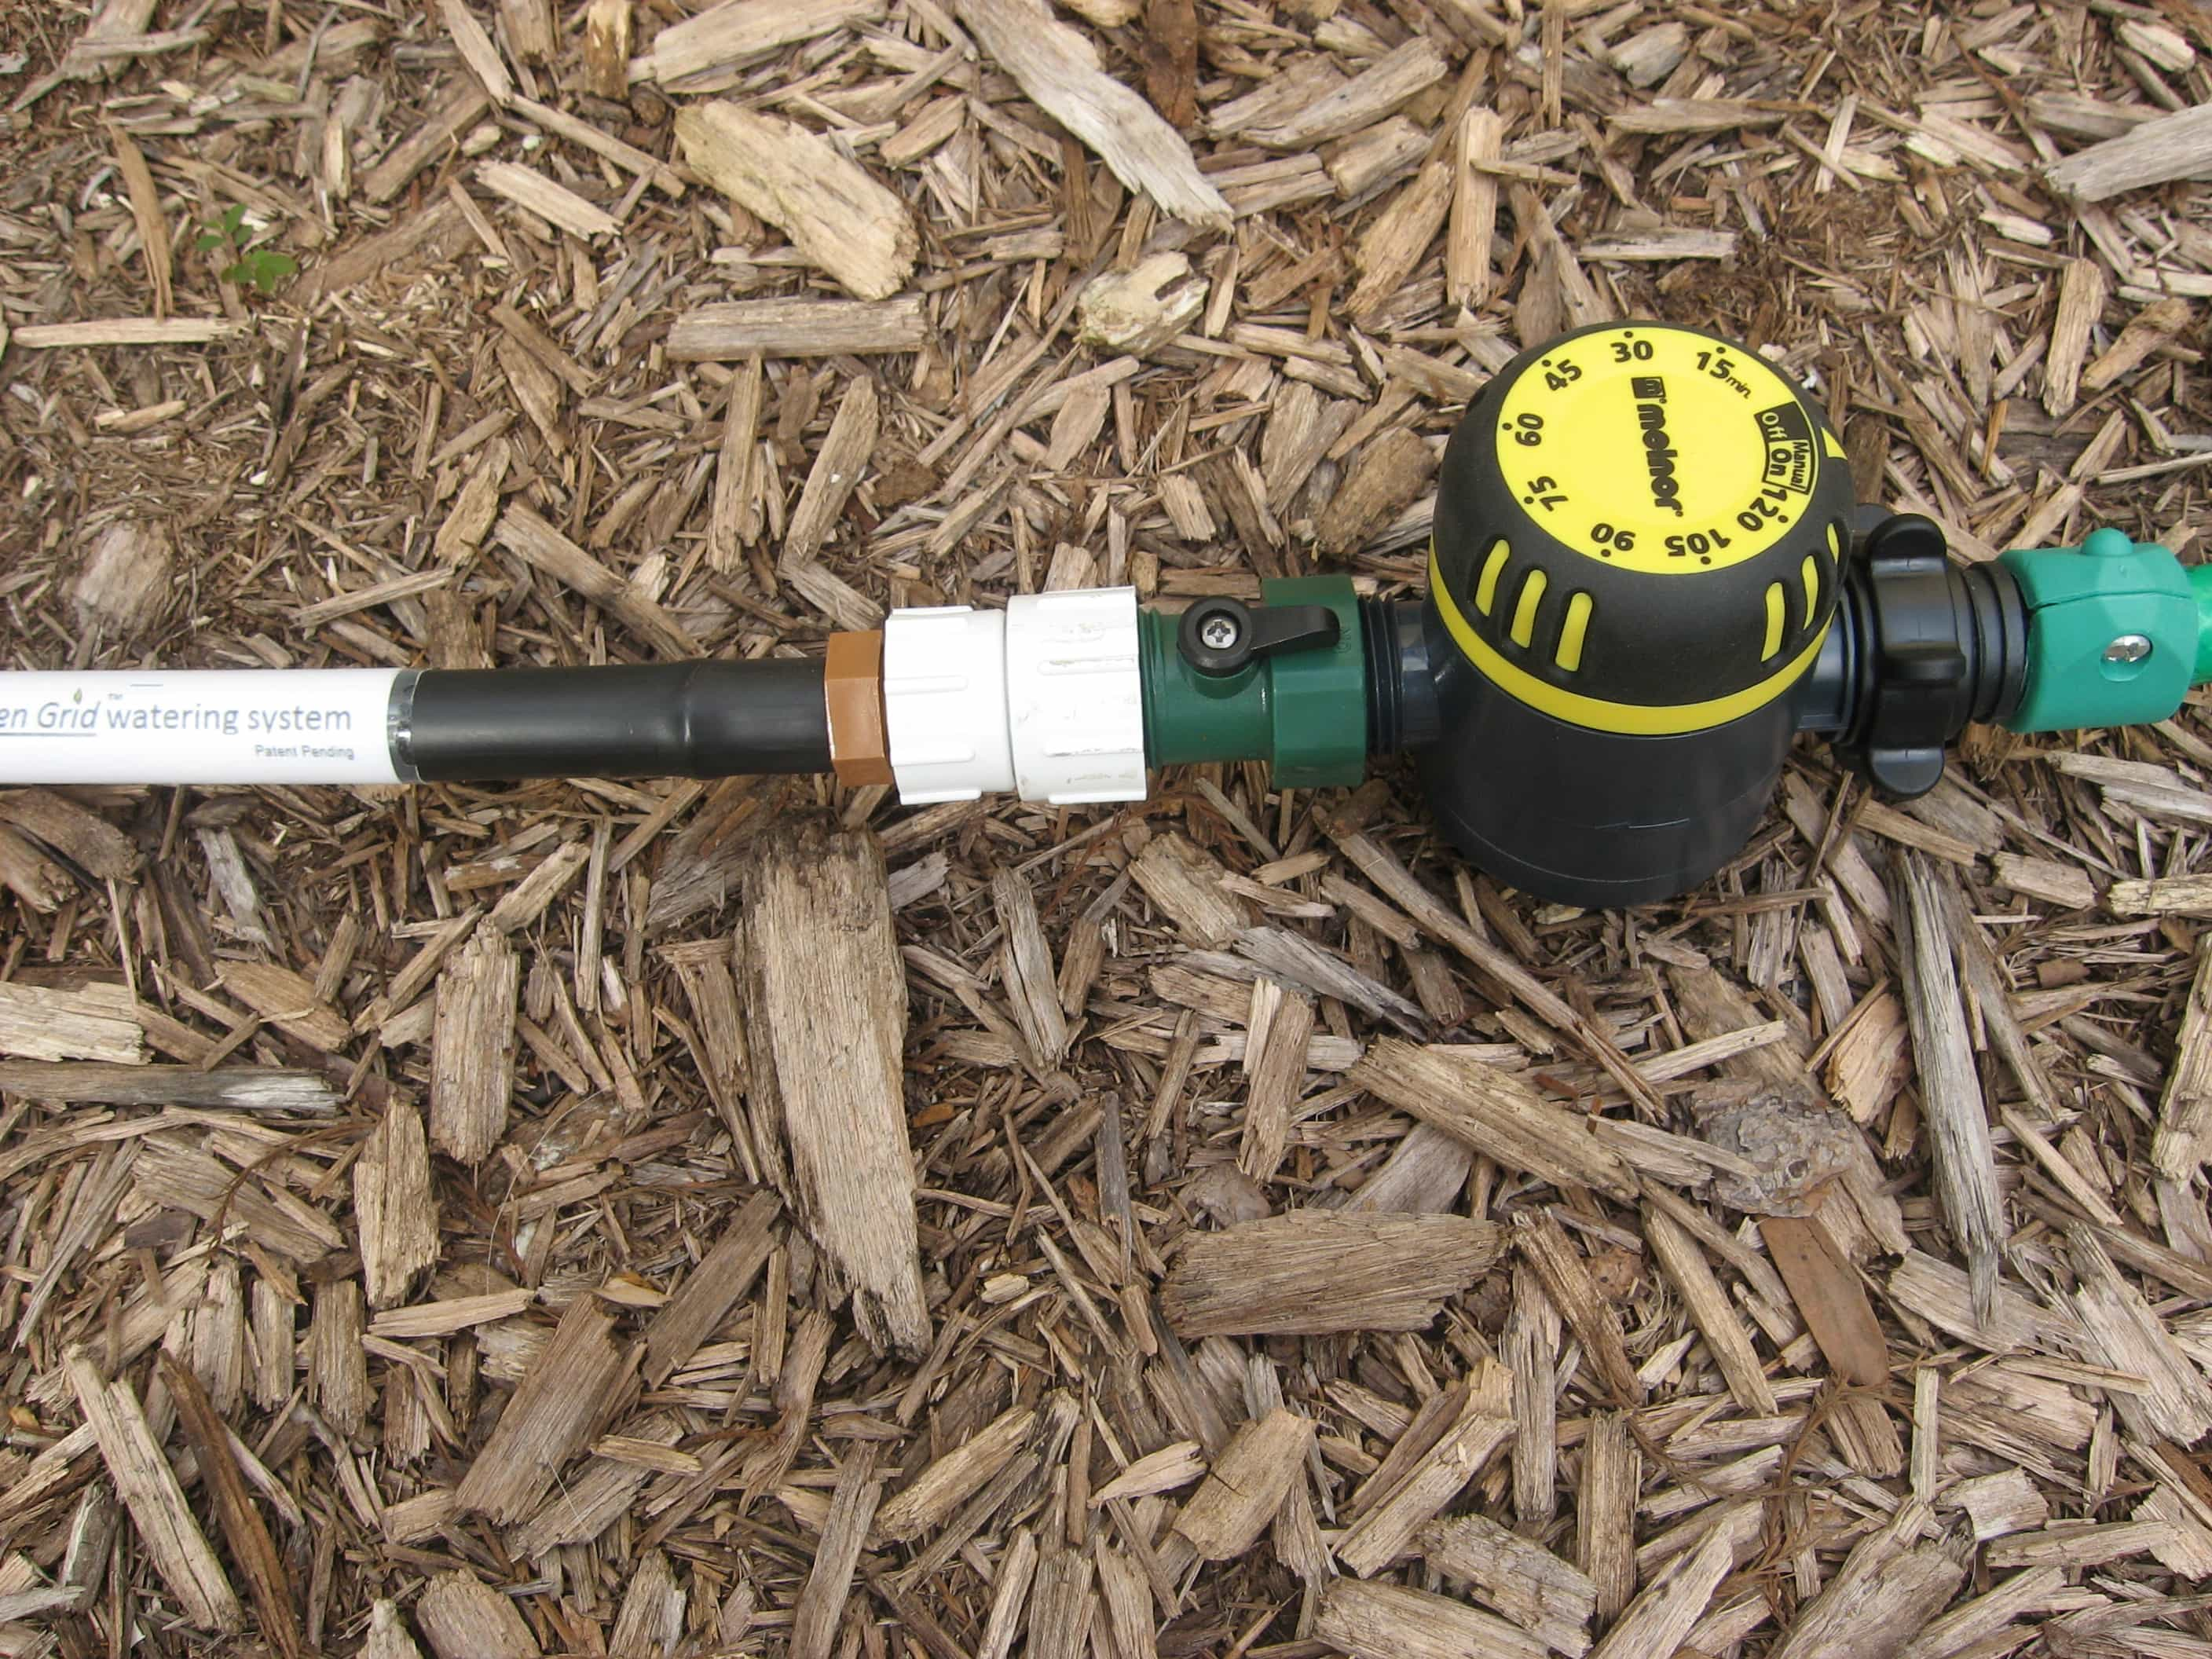 Garden Grid watering system connection, Garden Hose Timer, water flow valve